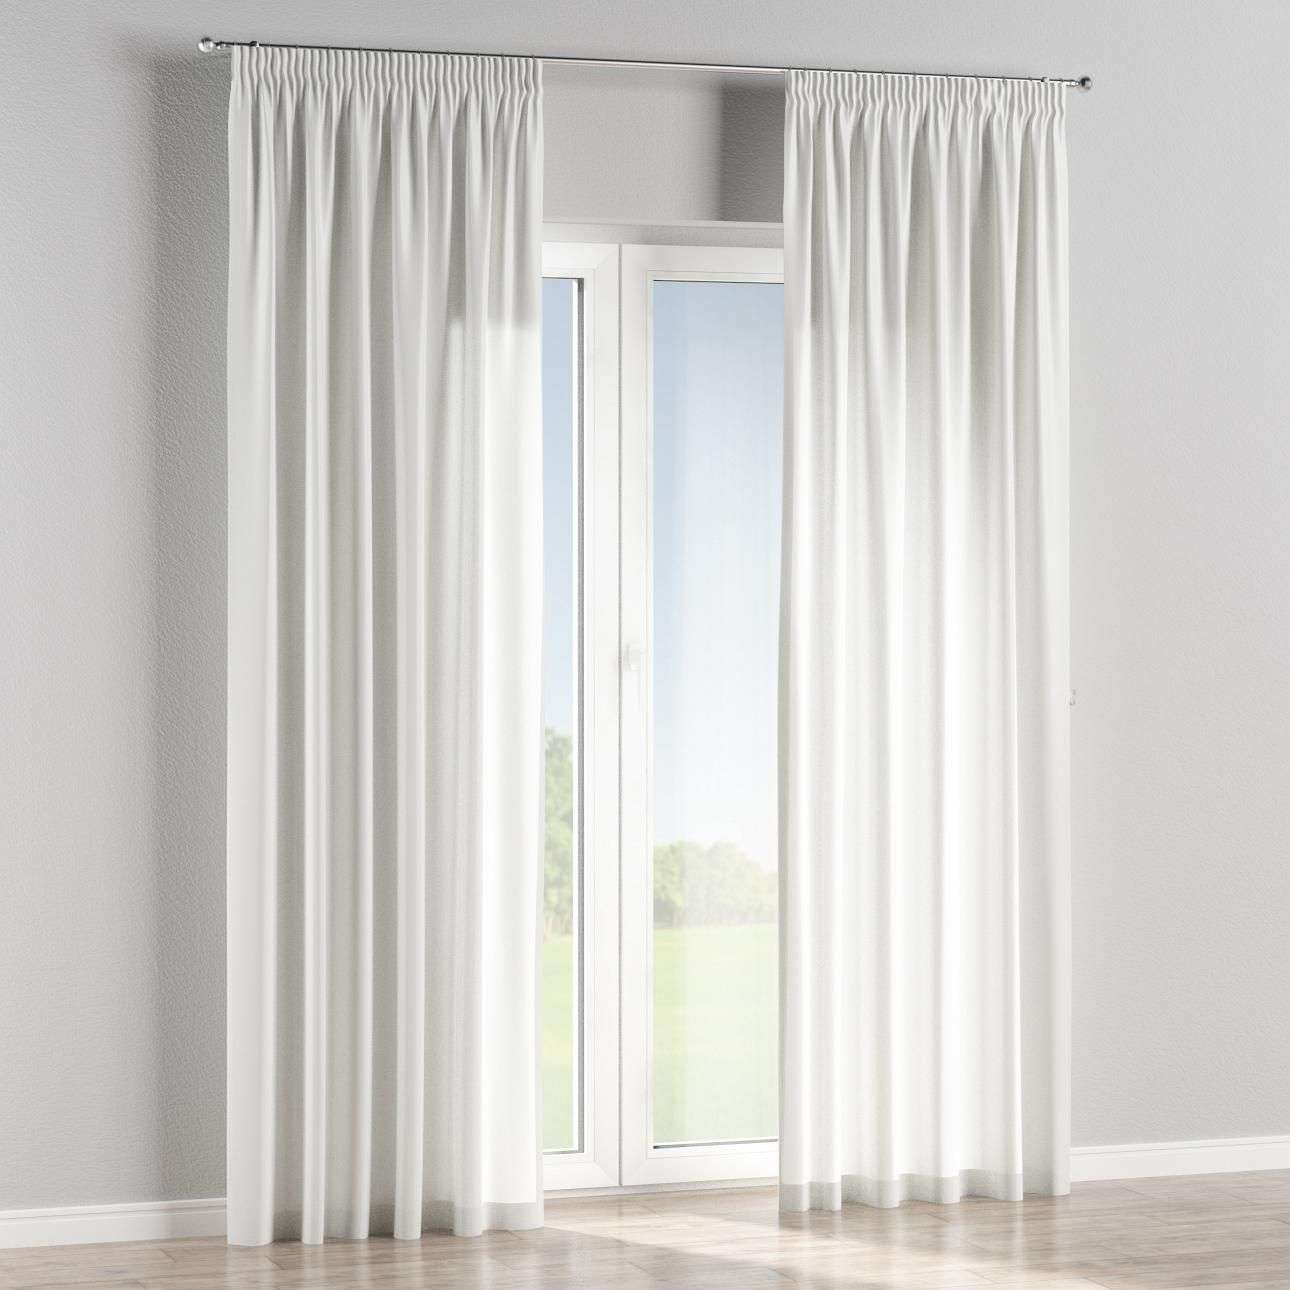 Pencil pleat curtains in collection SALE, fabric: 139-52